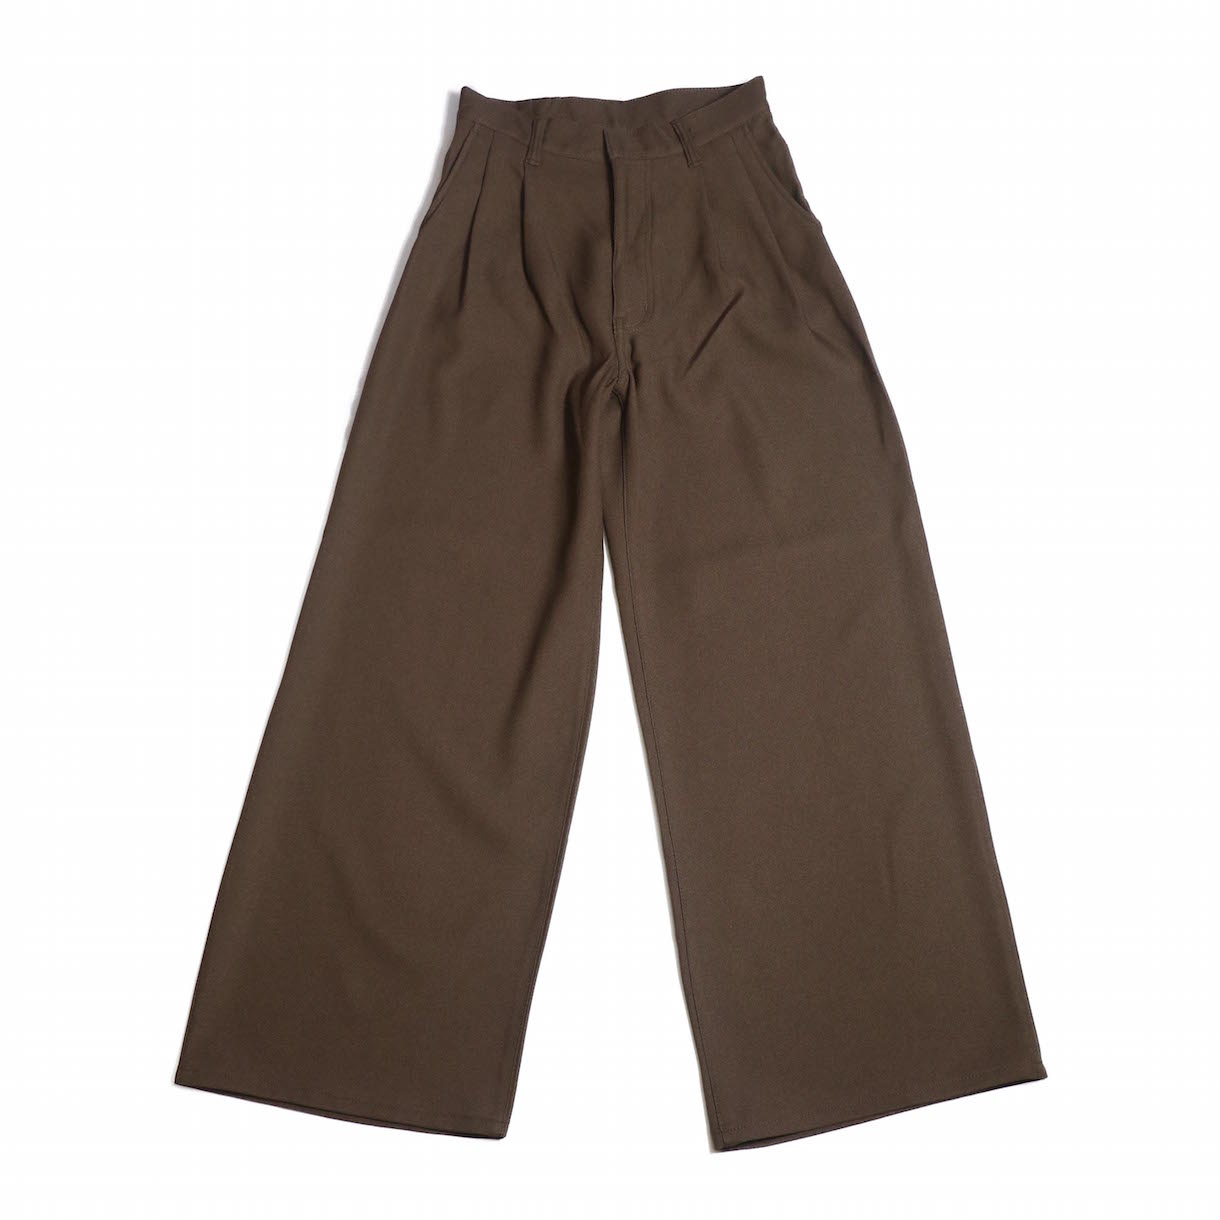 MY _ / STA PREST PANTS- BROWN